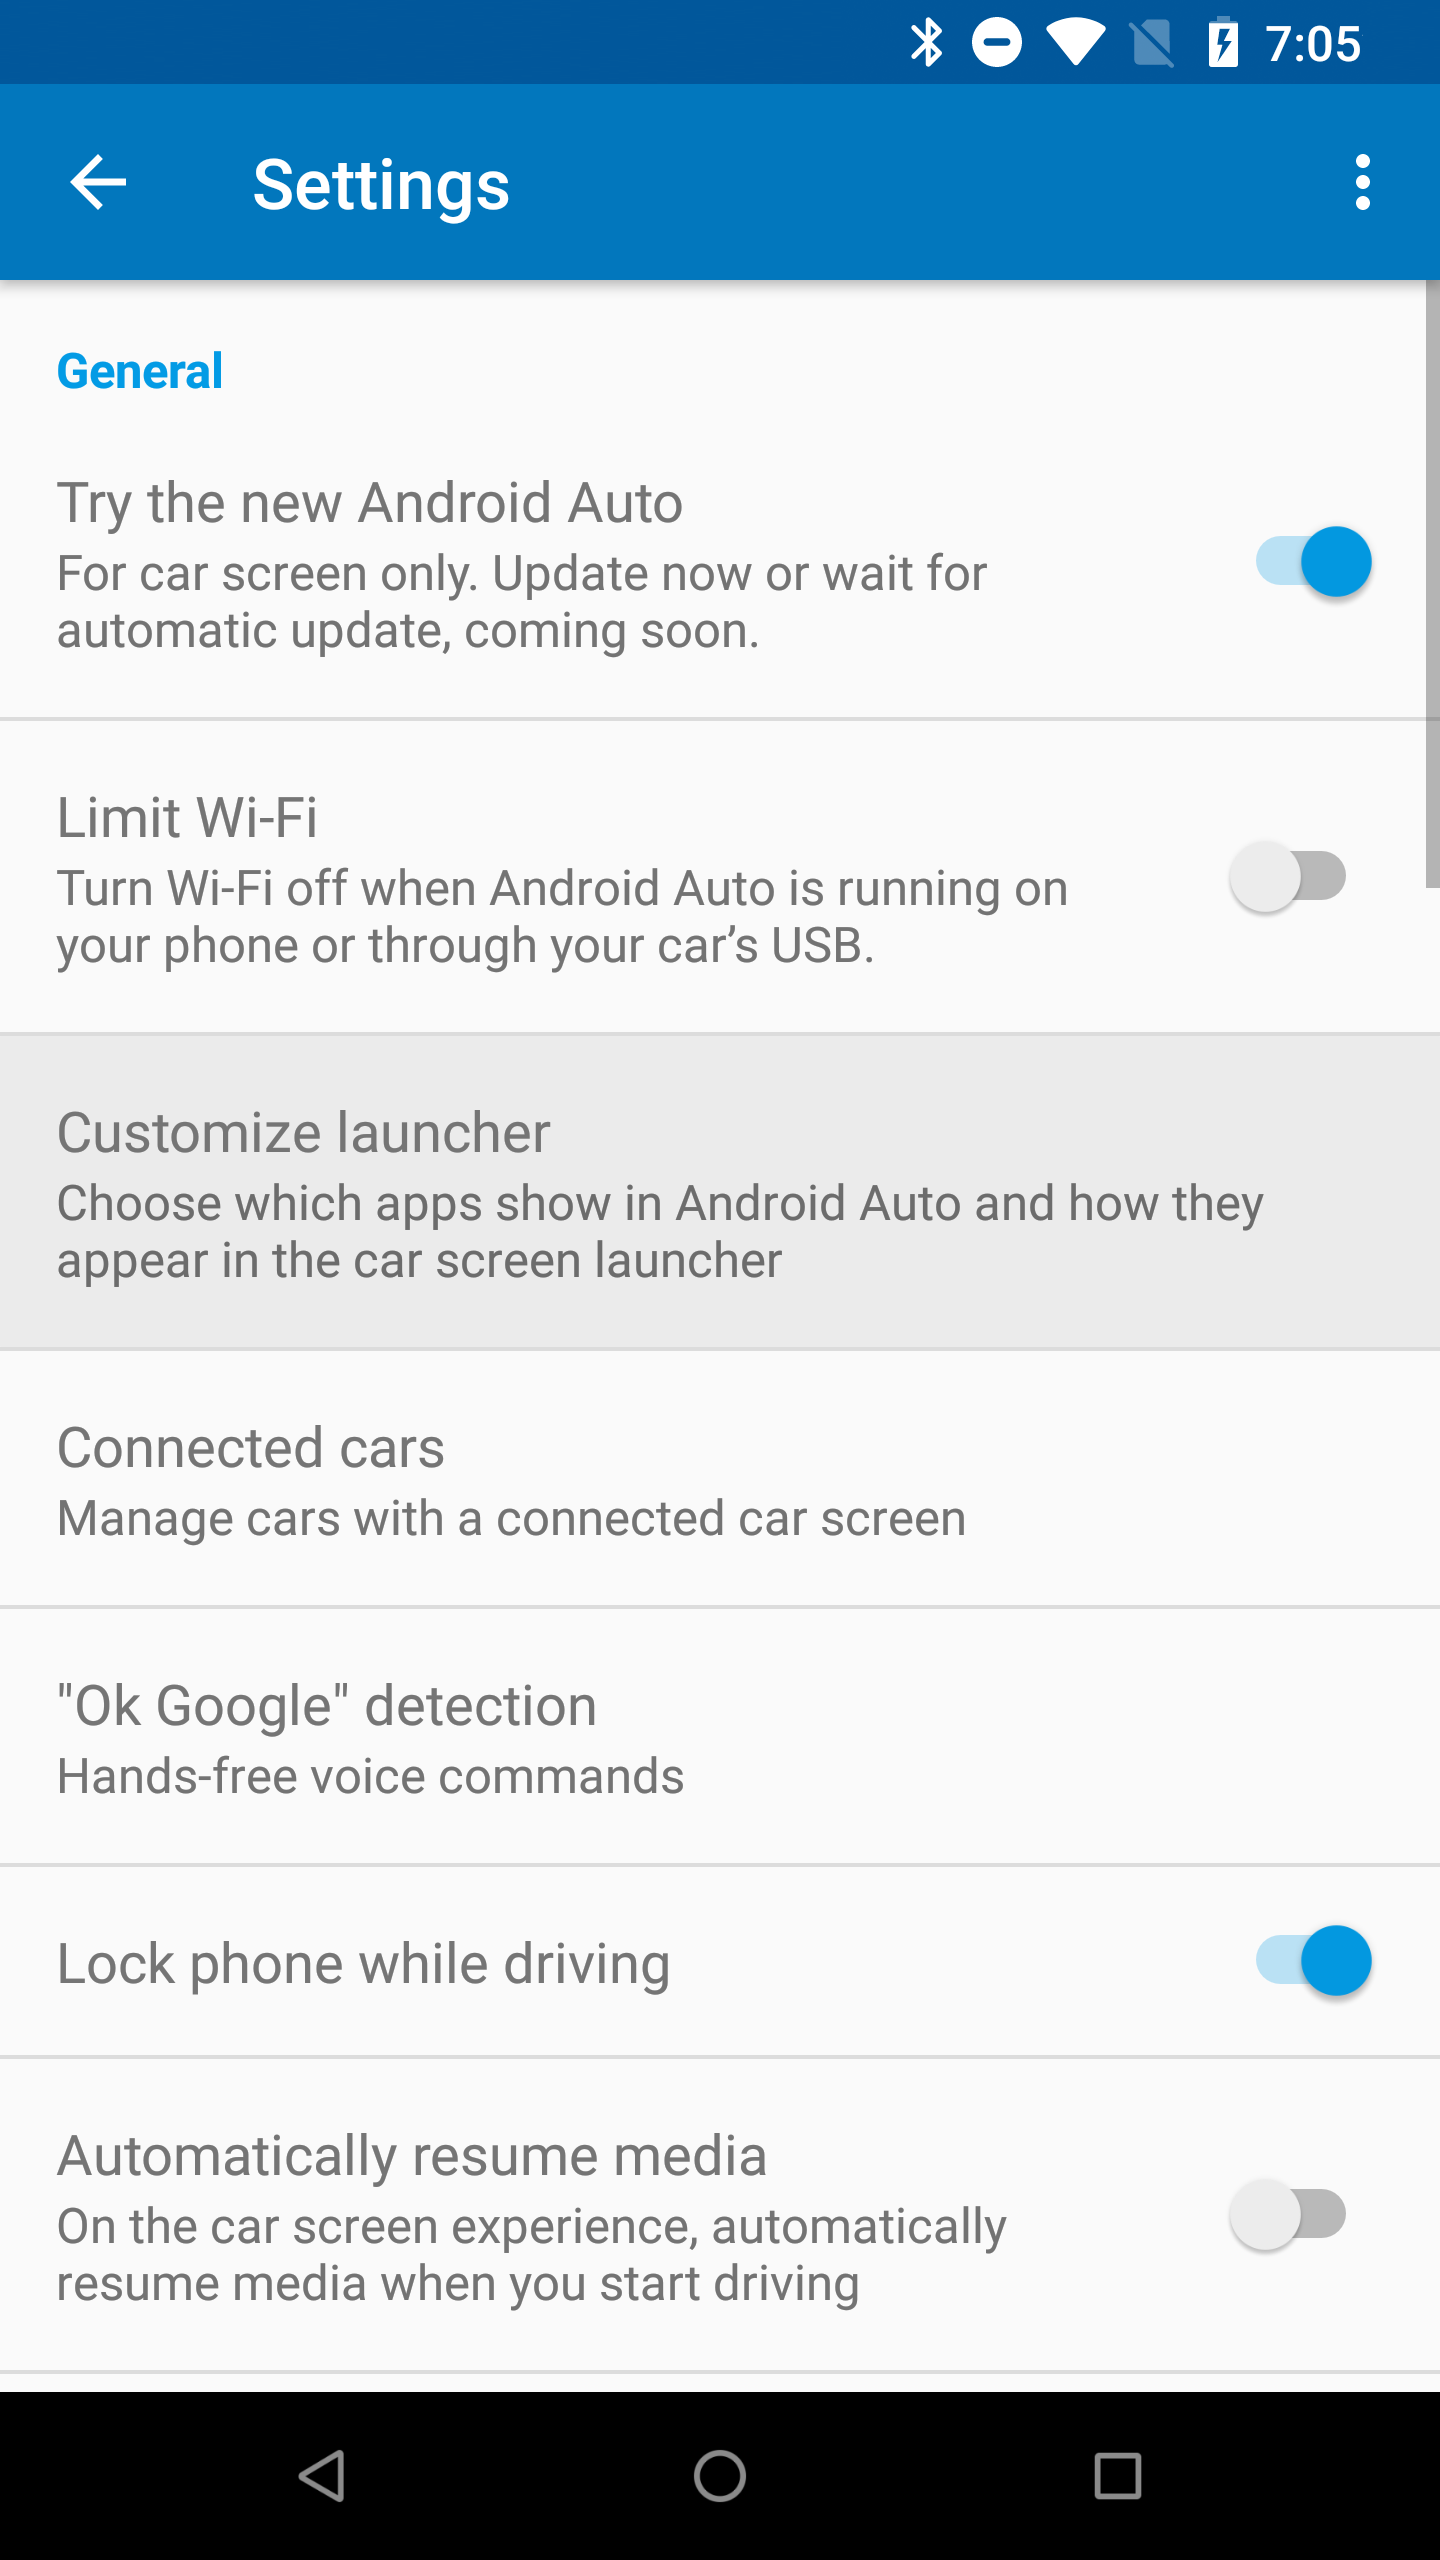 android_auto_launcher_customization_1